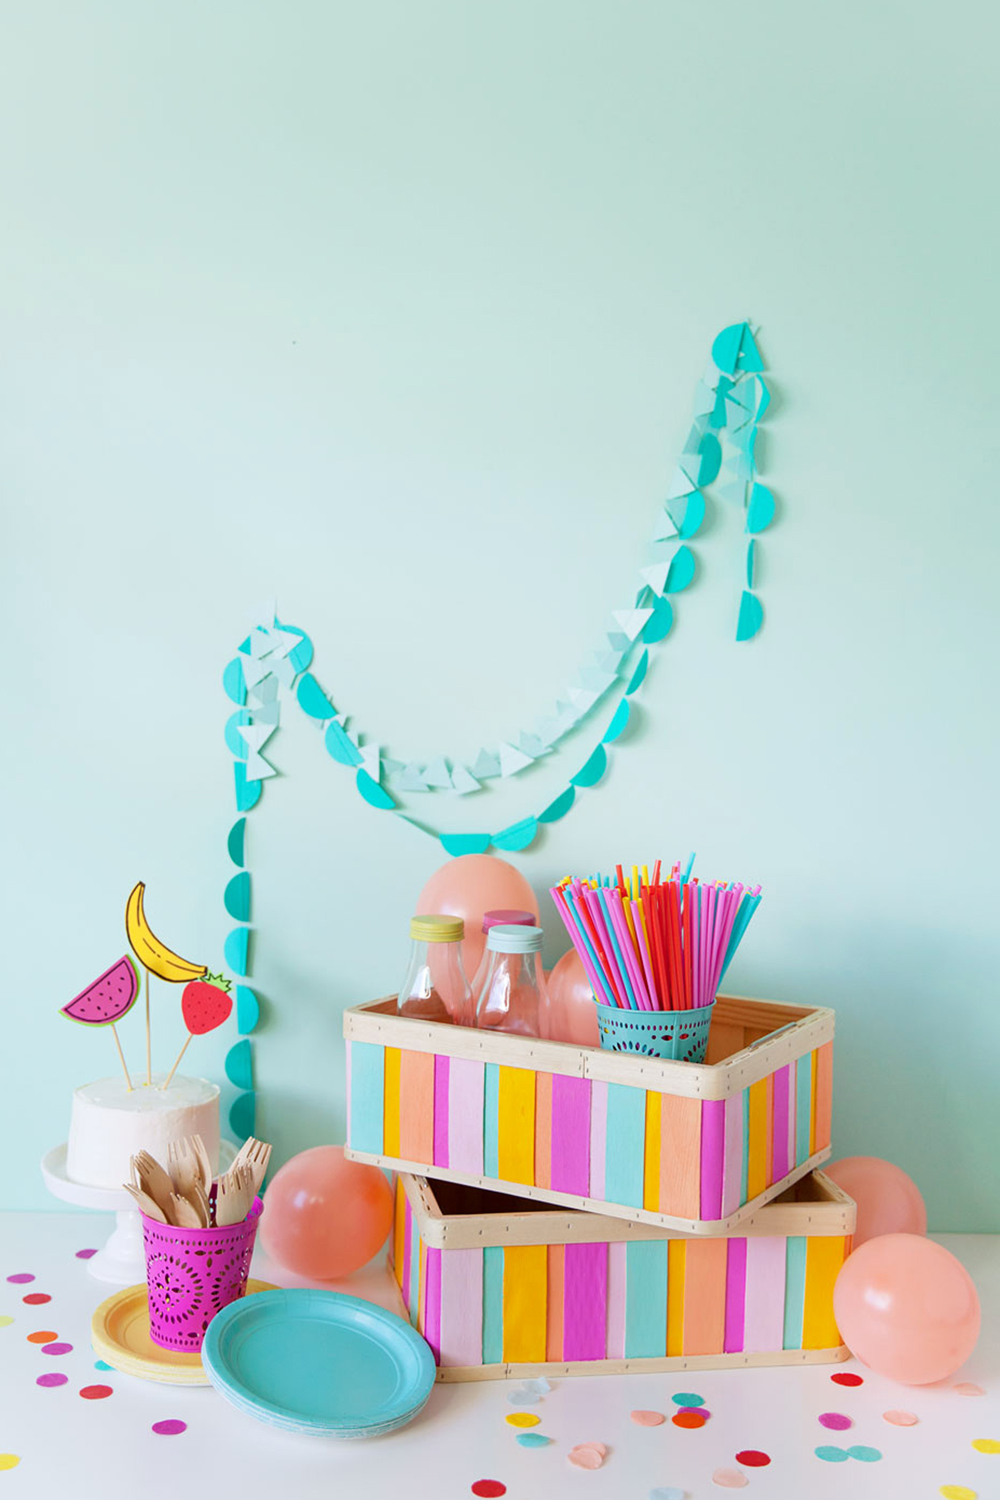 DIY-painted-wood-box-perfect-for-parties-or-just-cute-storage